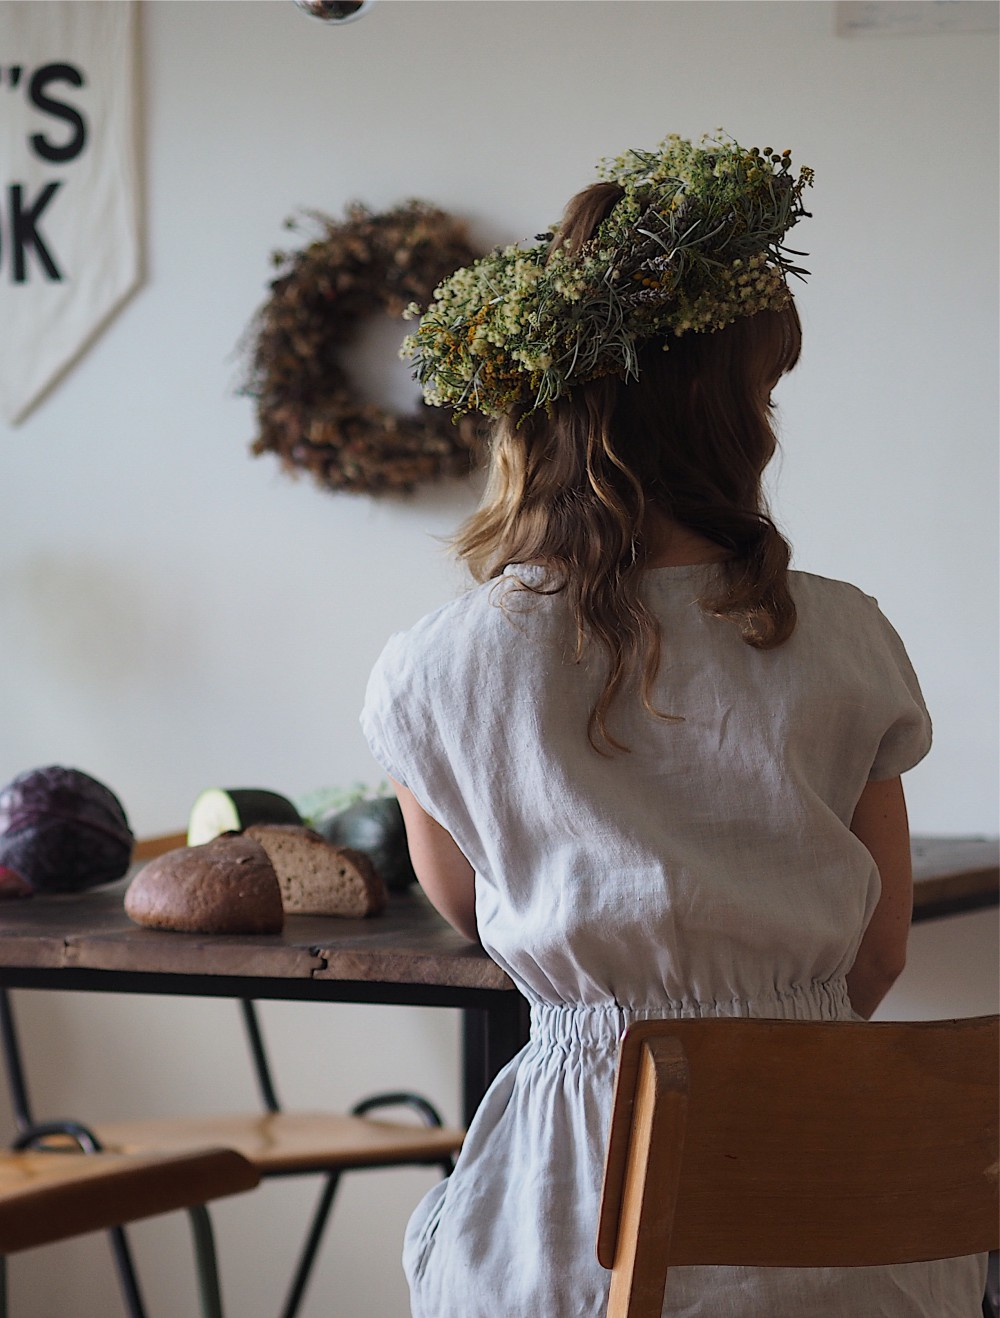 sitting_woman_desk_diy_wreath_wildflowers_evafedeveka_photography